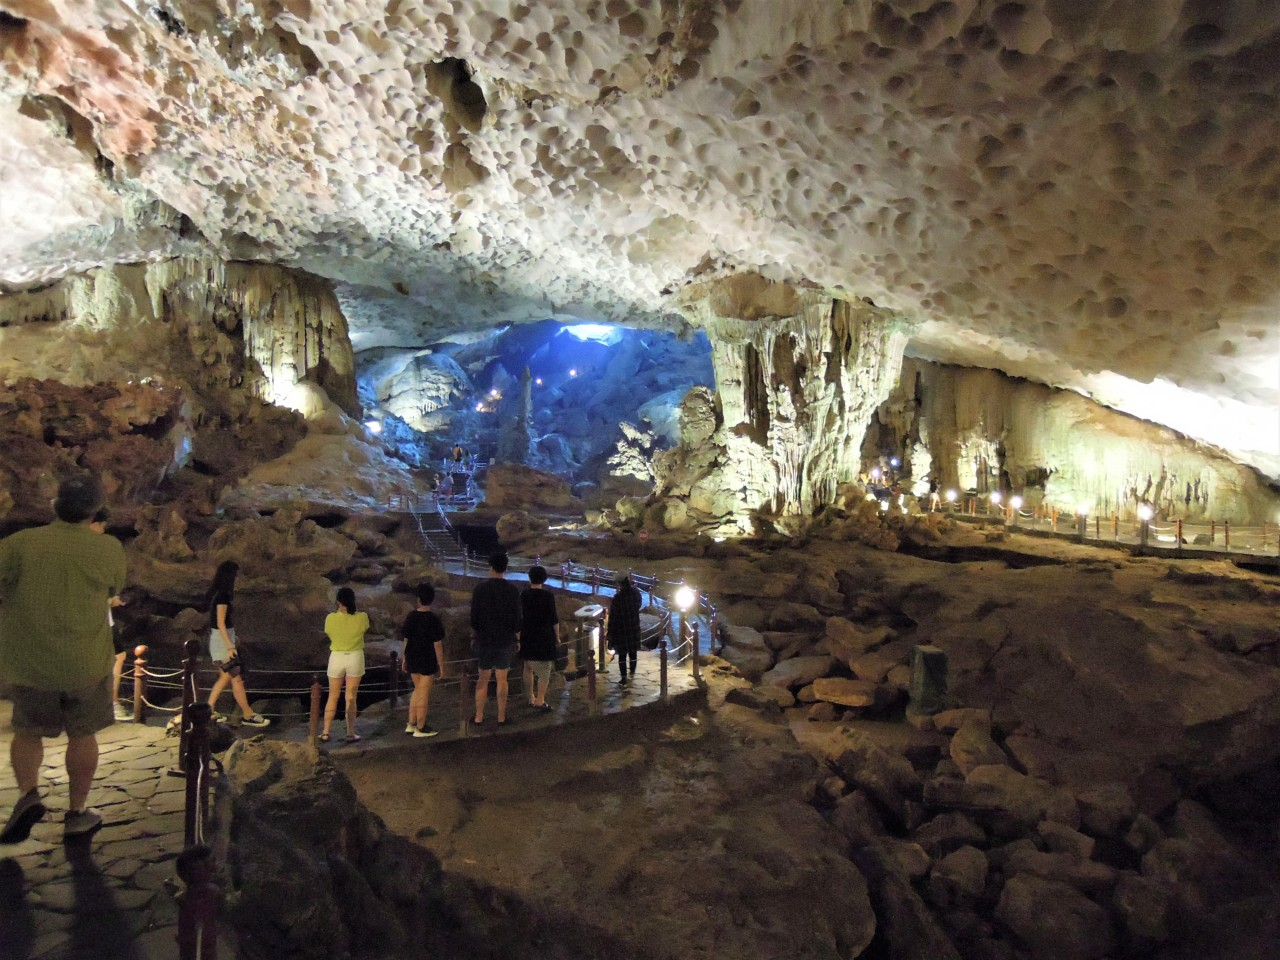 Visitors look around Sung Sot Cave in Halong Bay, Vietnam. (Paul Kerry/The Korea Herald)